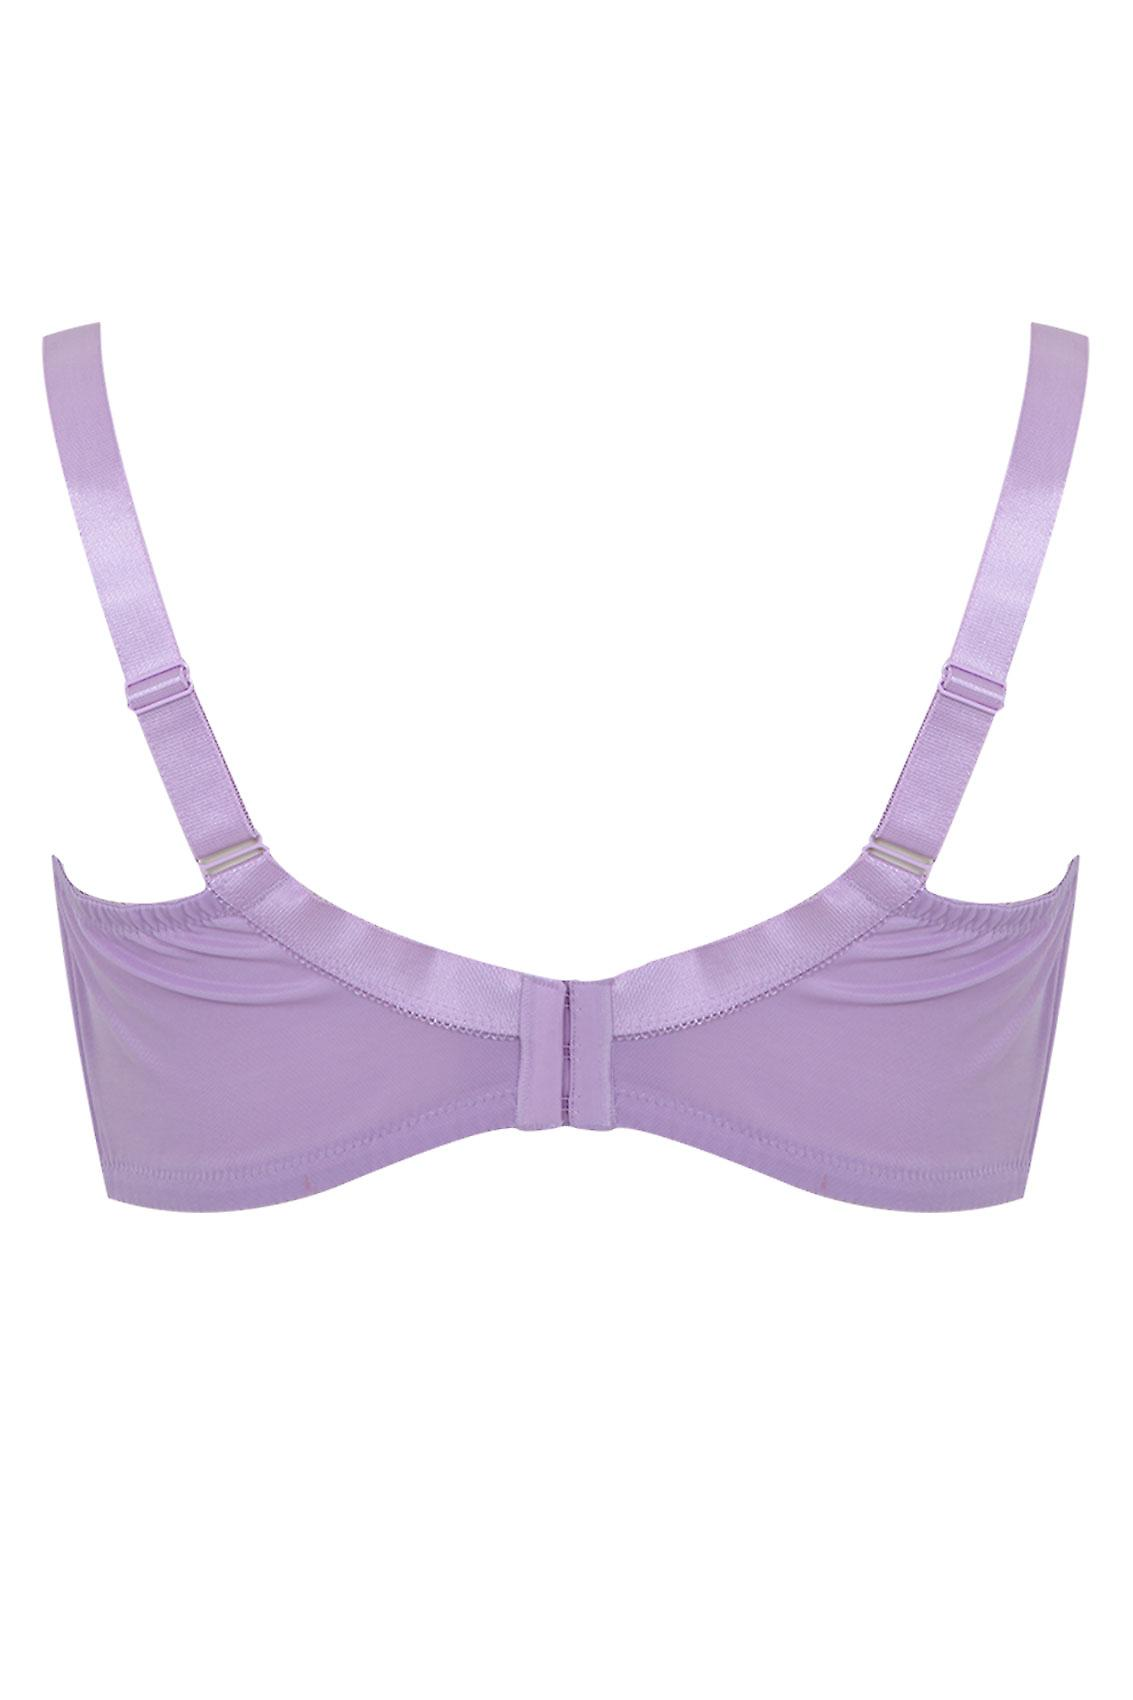 Lilac Cotton Rich Non-Wired Bra With Lace Trim